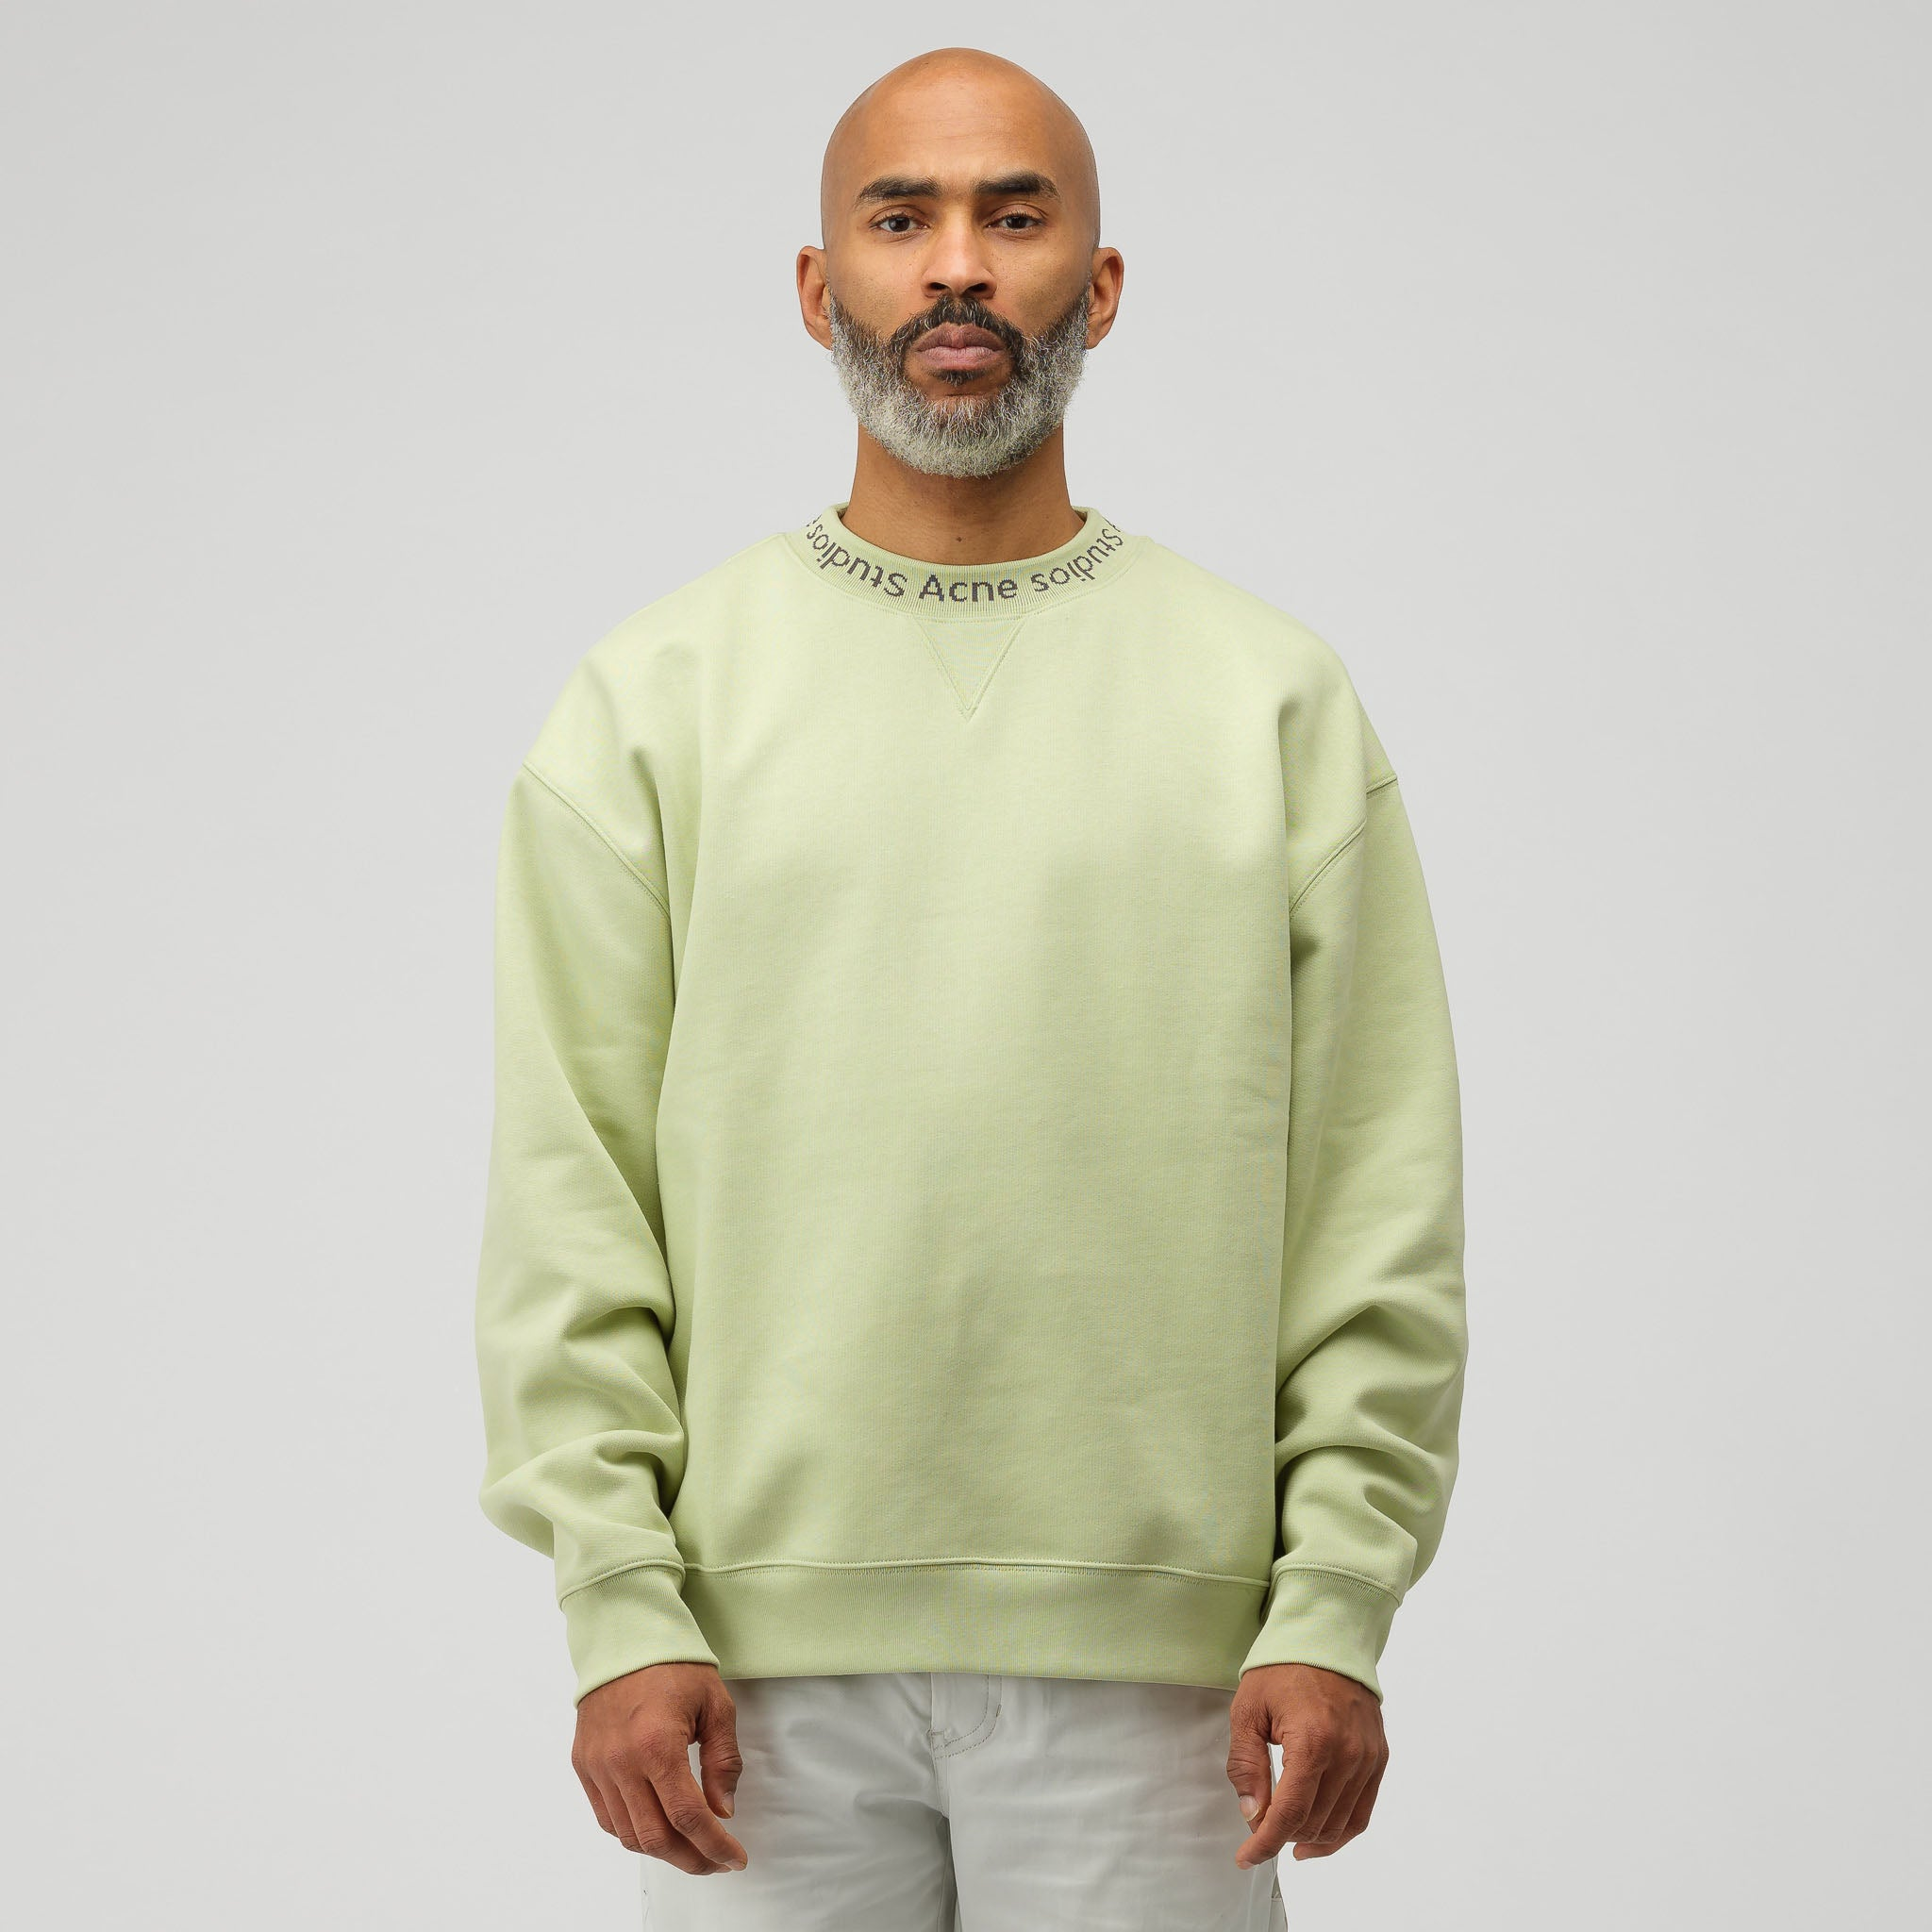 Flogho Crewneck Sweatshirt in Pale Green